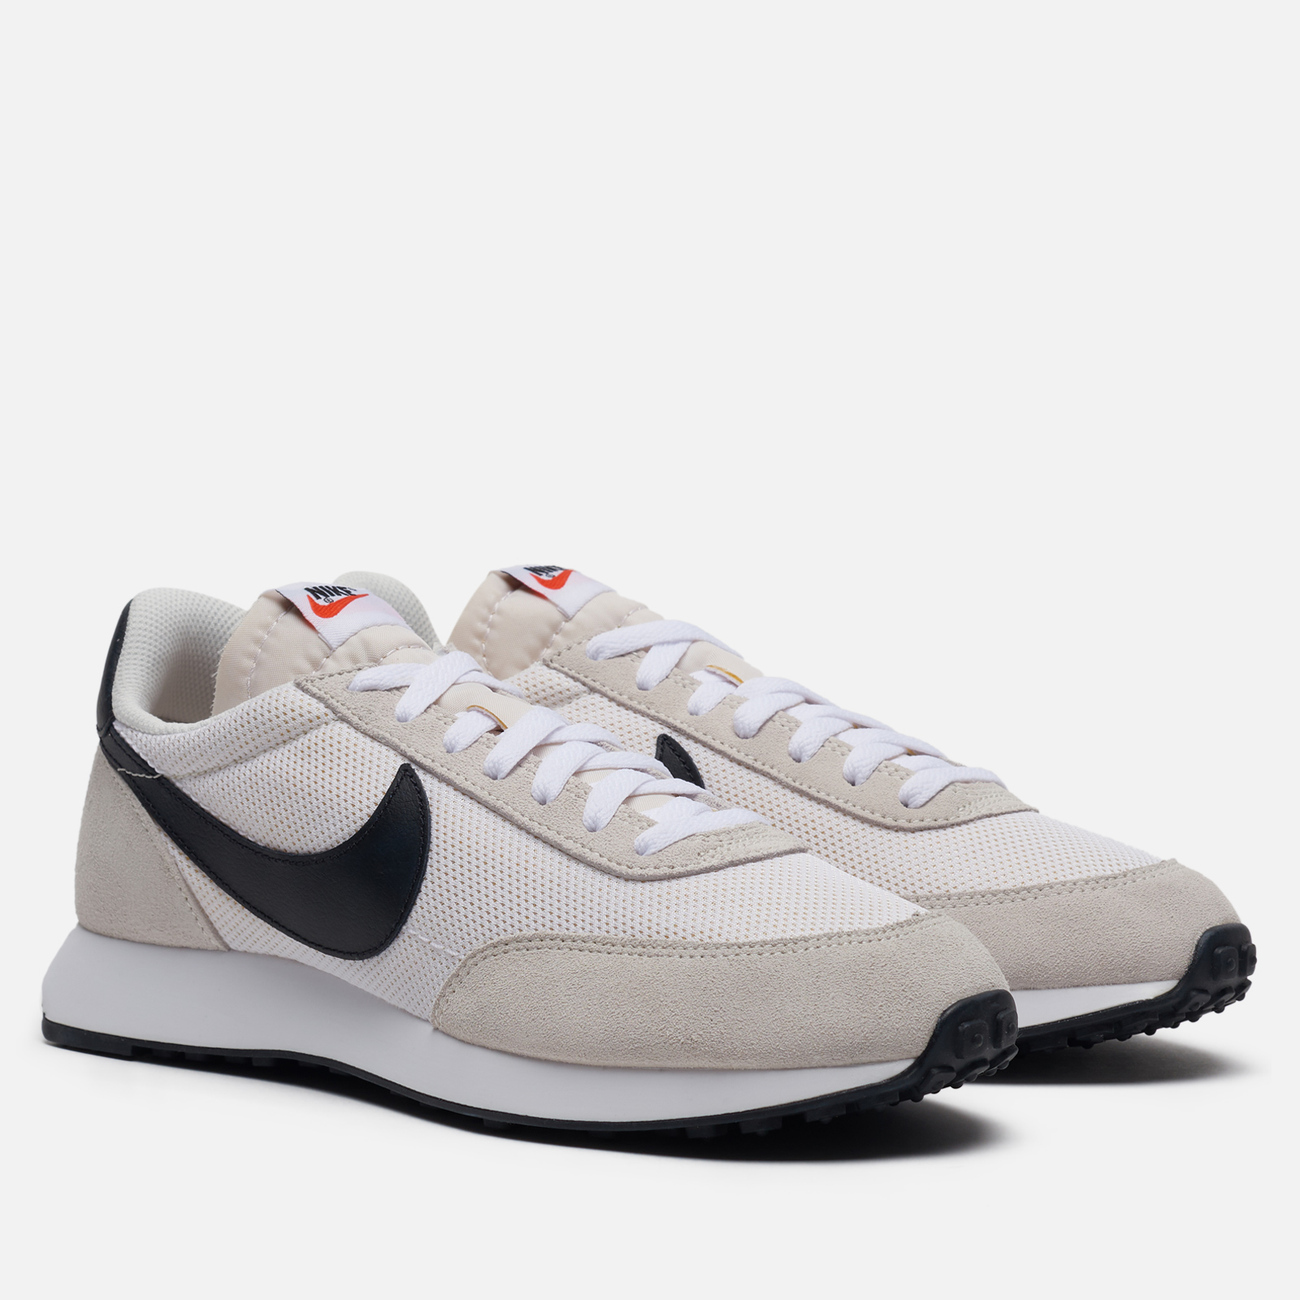 Мужские кроссовки Nike Air Tailwind 79 White/Black/Phantom/Dark Grey